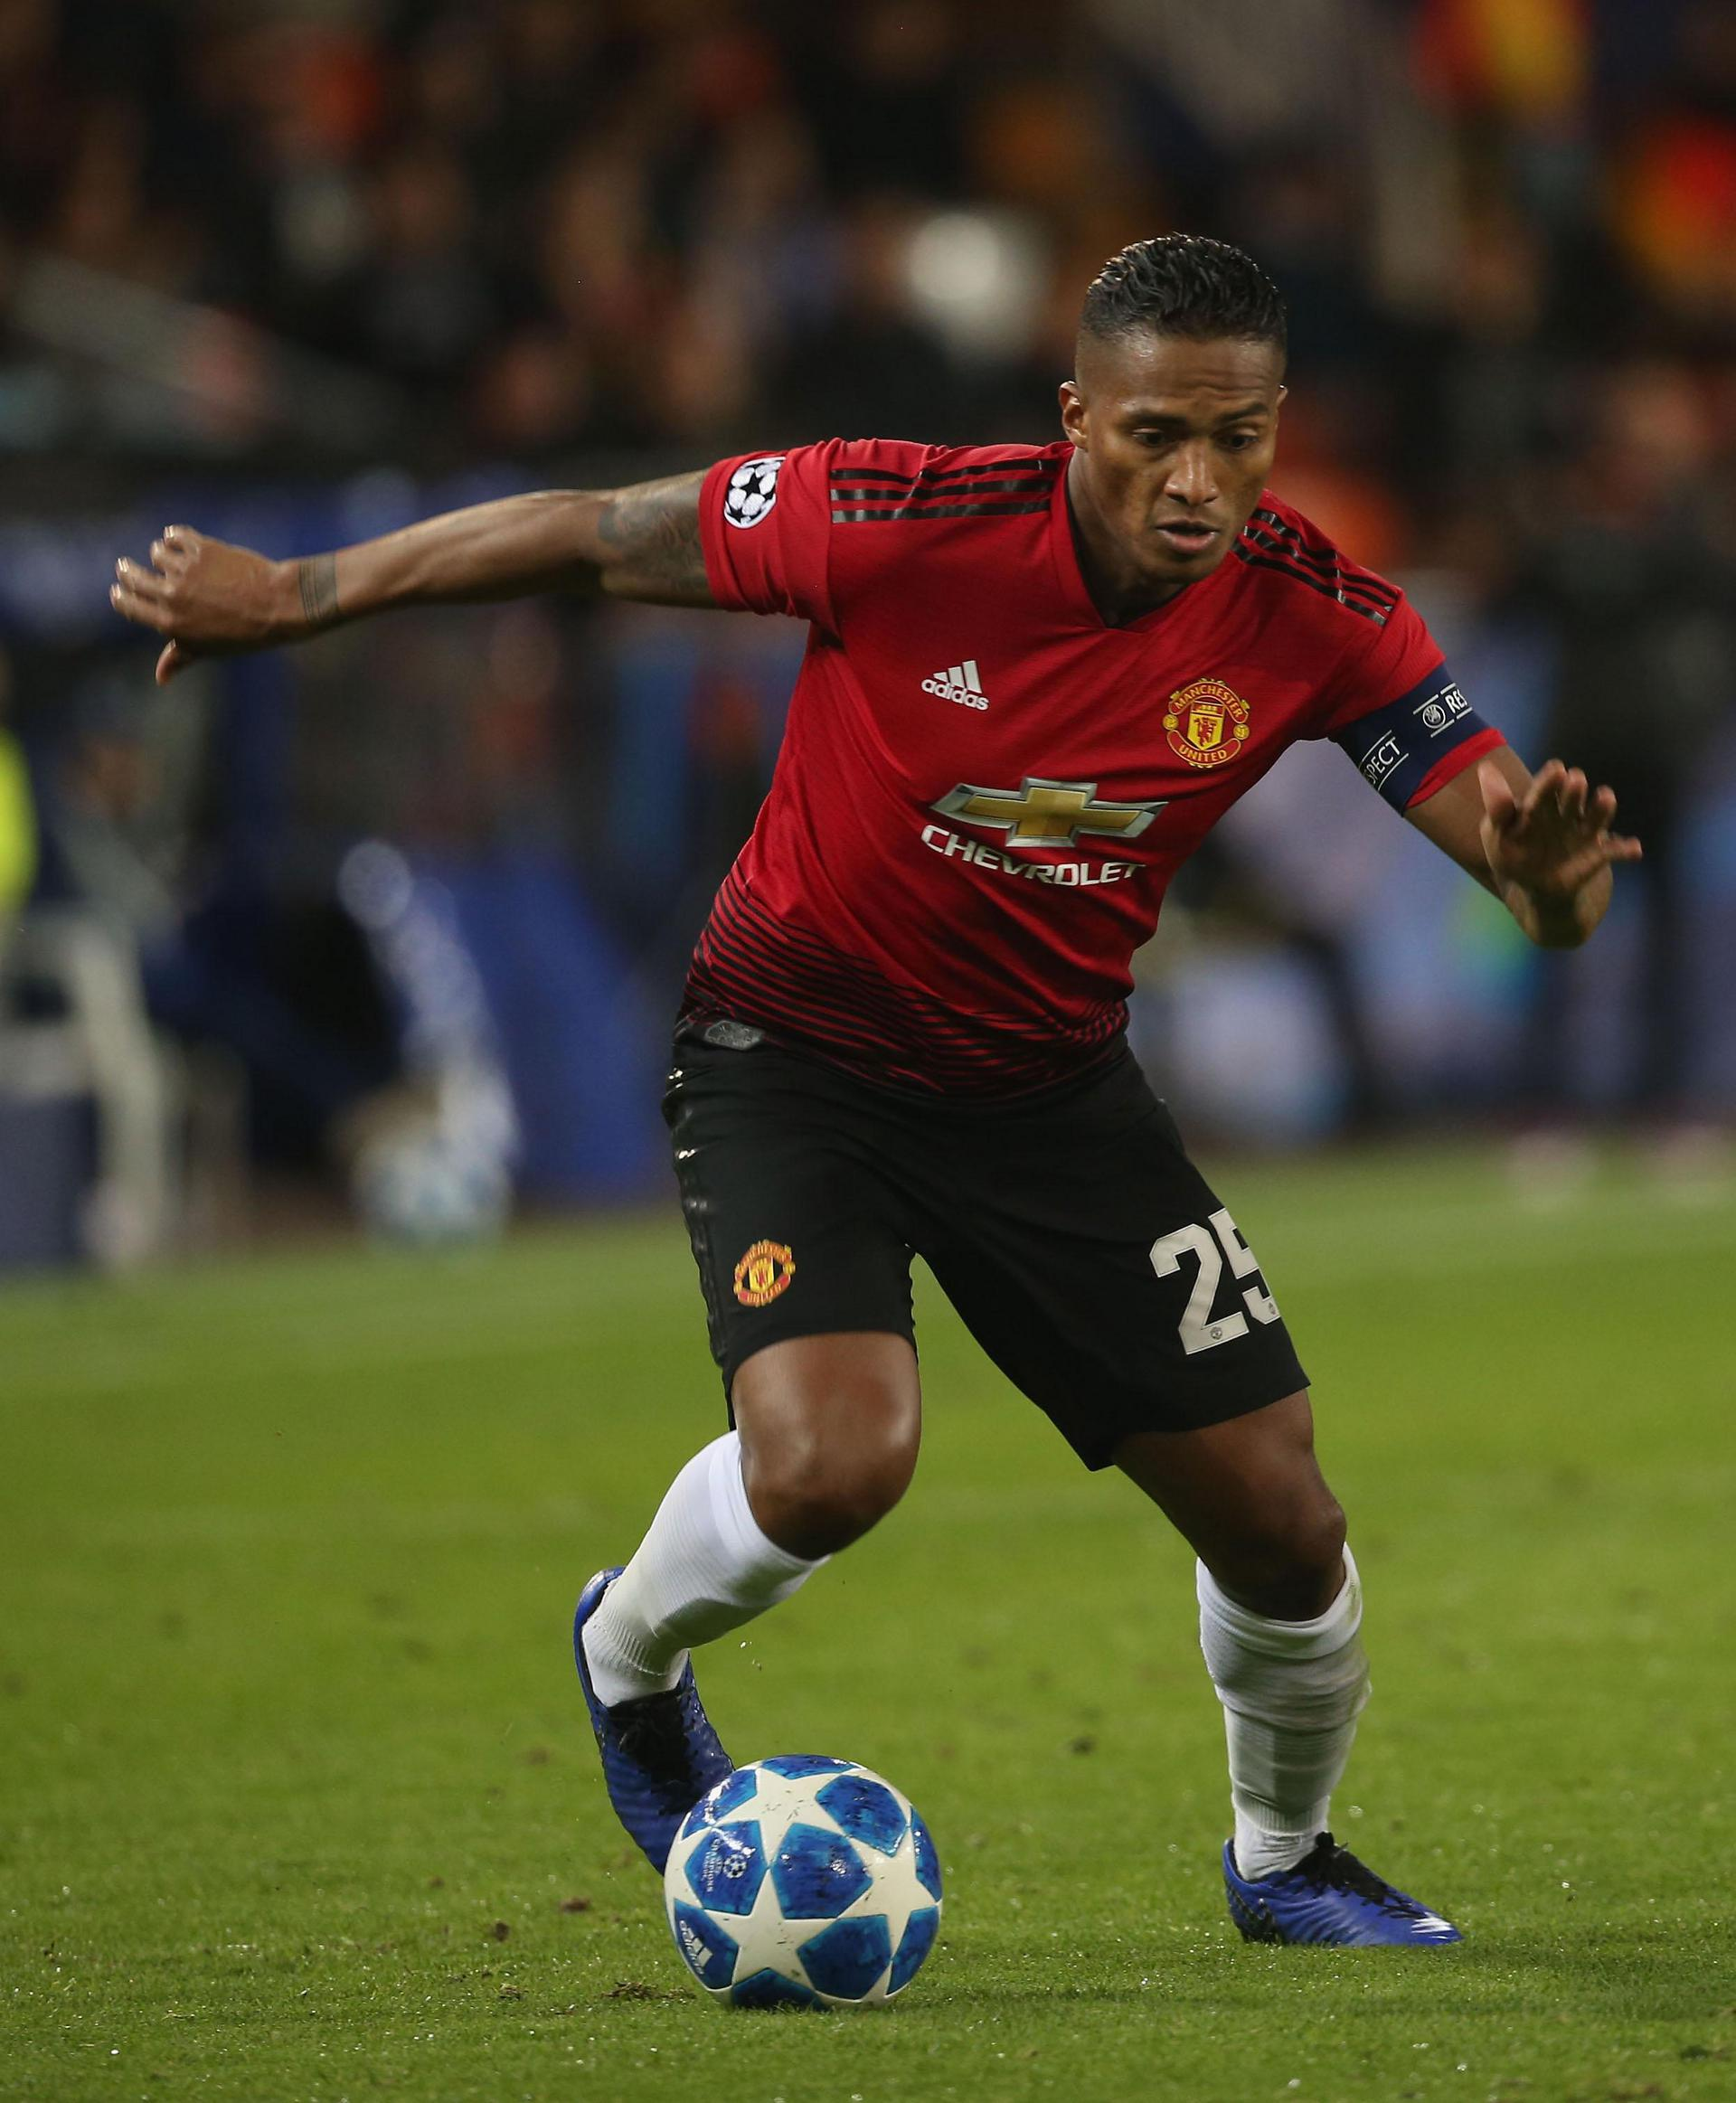 Antonio Valencia in Champions League action for Manchester United, wearing the captain's armband